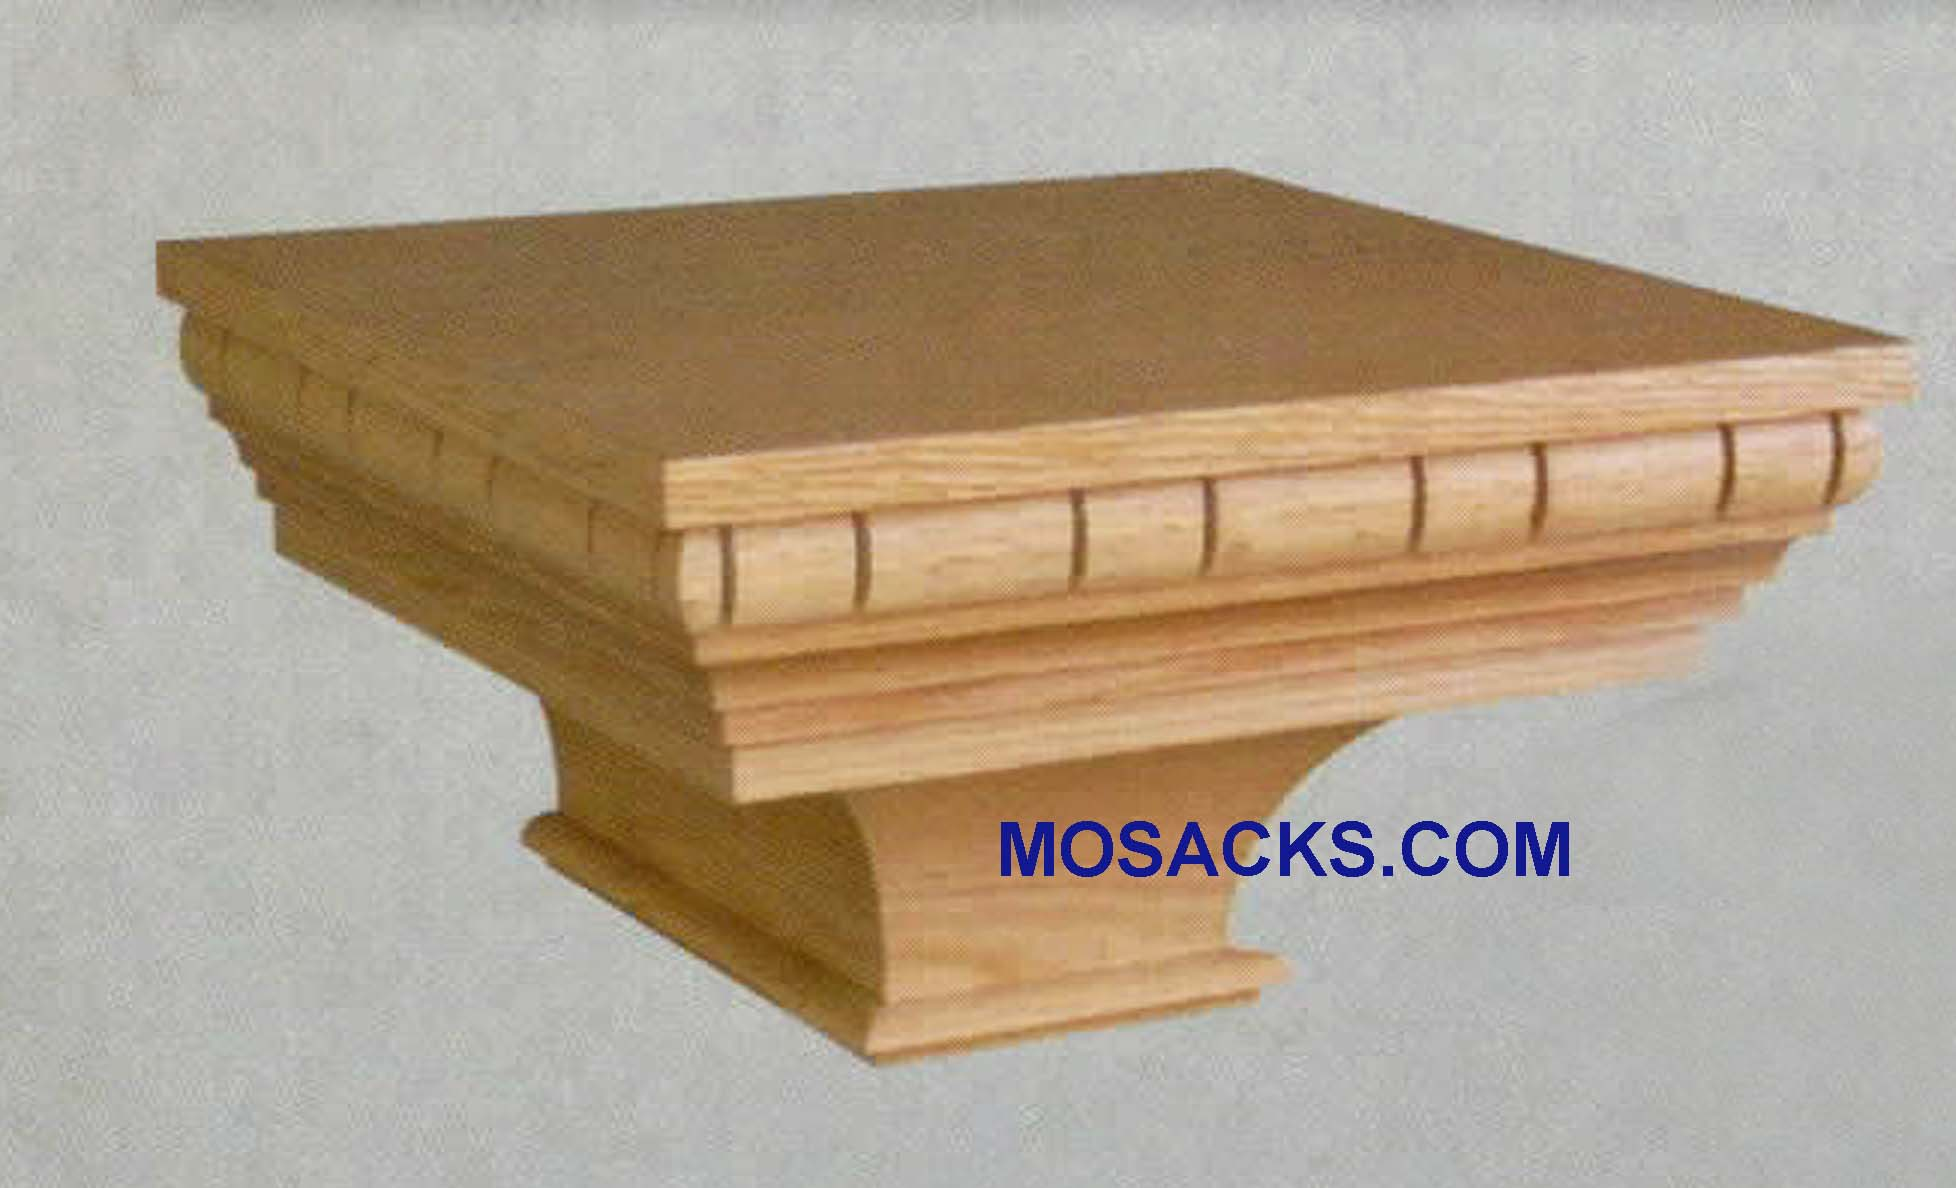 "Wooden Wall Mount Pedestal 20""w x 19""d, 9""h #427 W Brand Church Furniture at Mosack's"